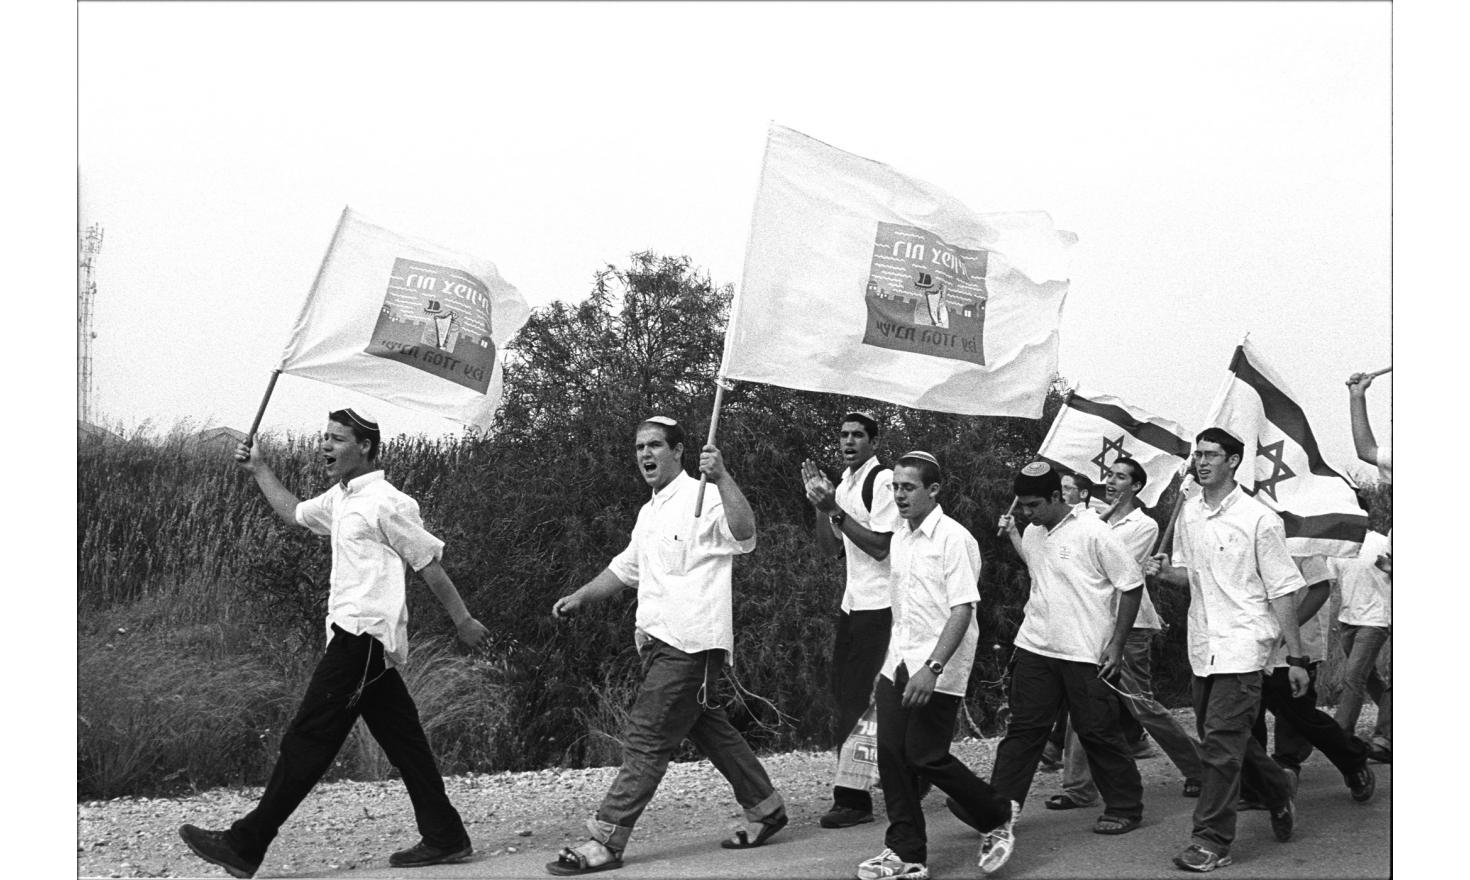 Thousands of israeli opposed to the withdraw of the israeli settlement of Gush Katif are marching to demonstrate. April 2004.